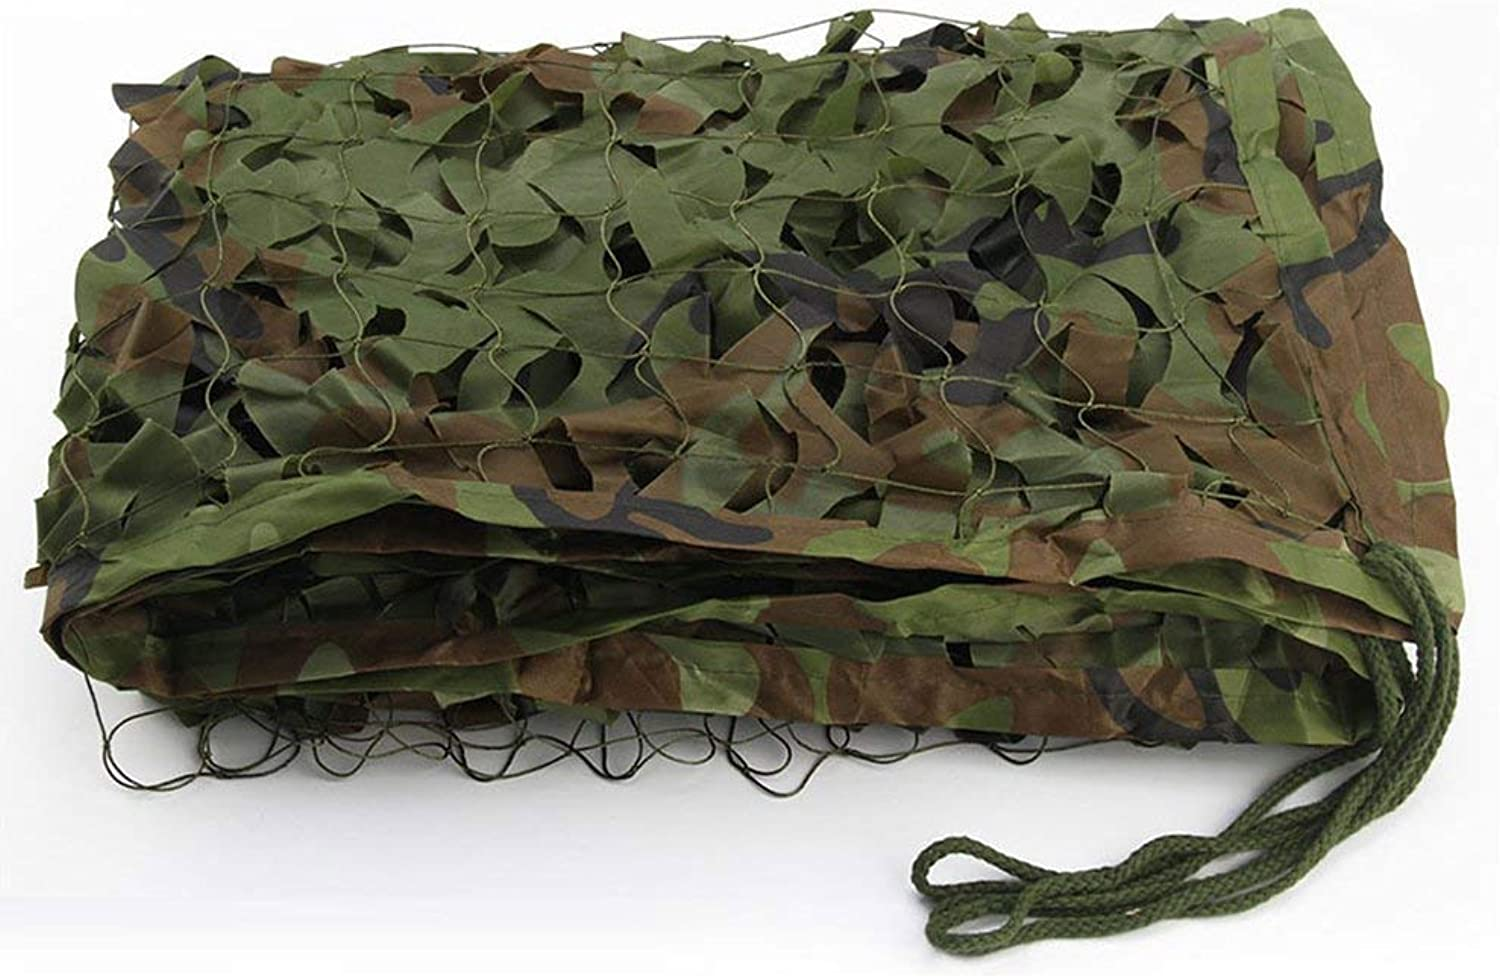 ATR 4mx3m Camouflage net, Outdoor Camouflage net for Camping Military Hunting Shooting Fishing, Jungle Camouflage Paint